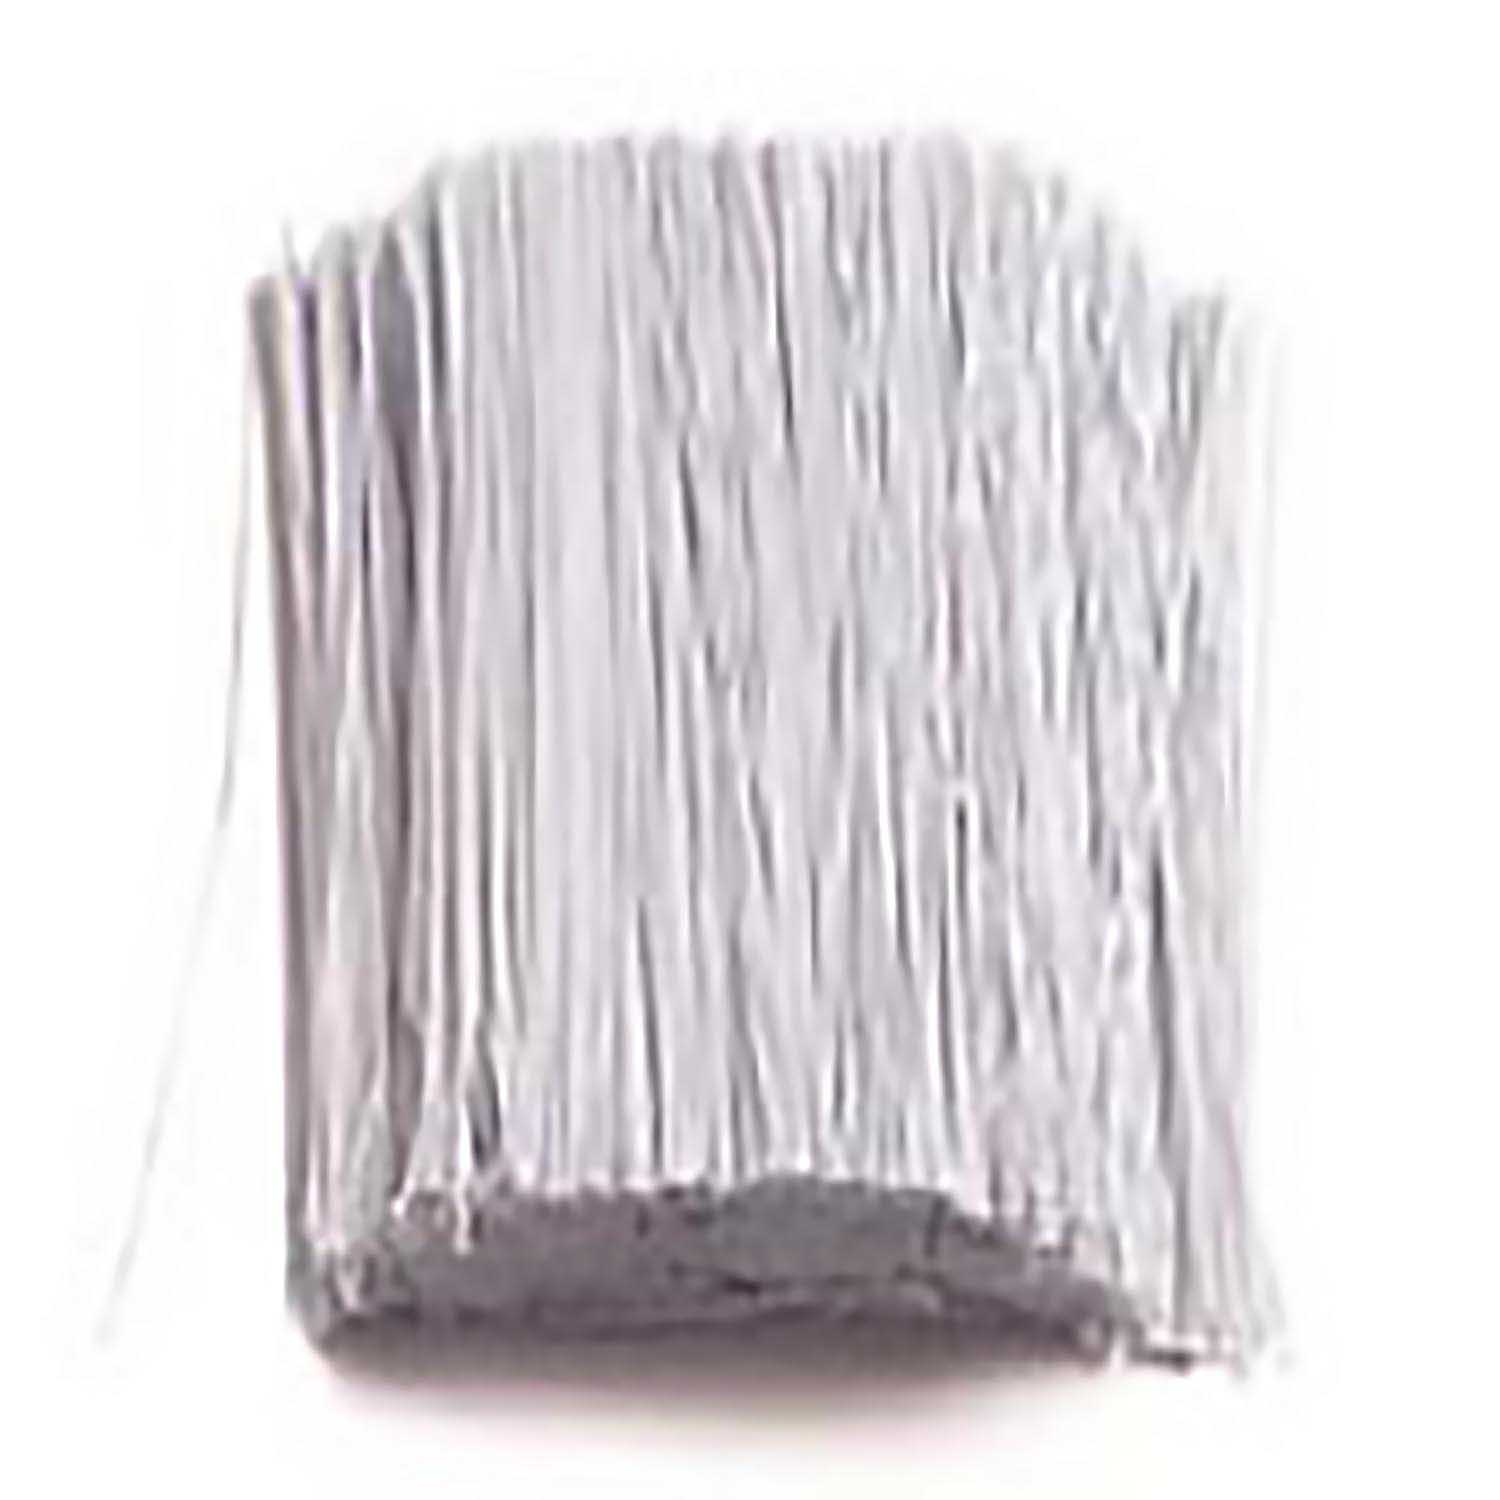 "32 Gauge White 6"" Covered Wire"